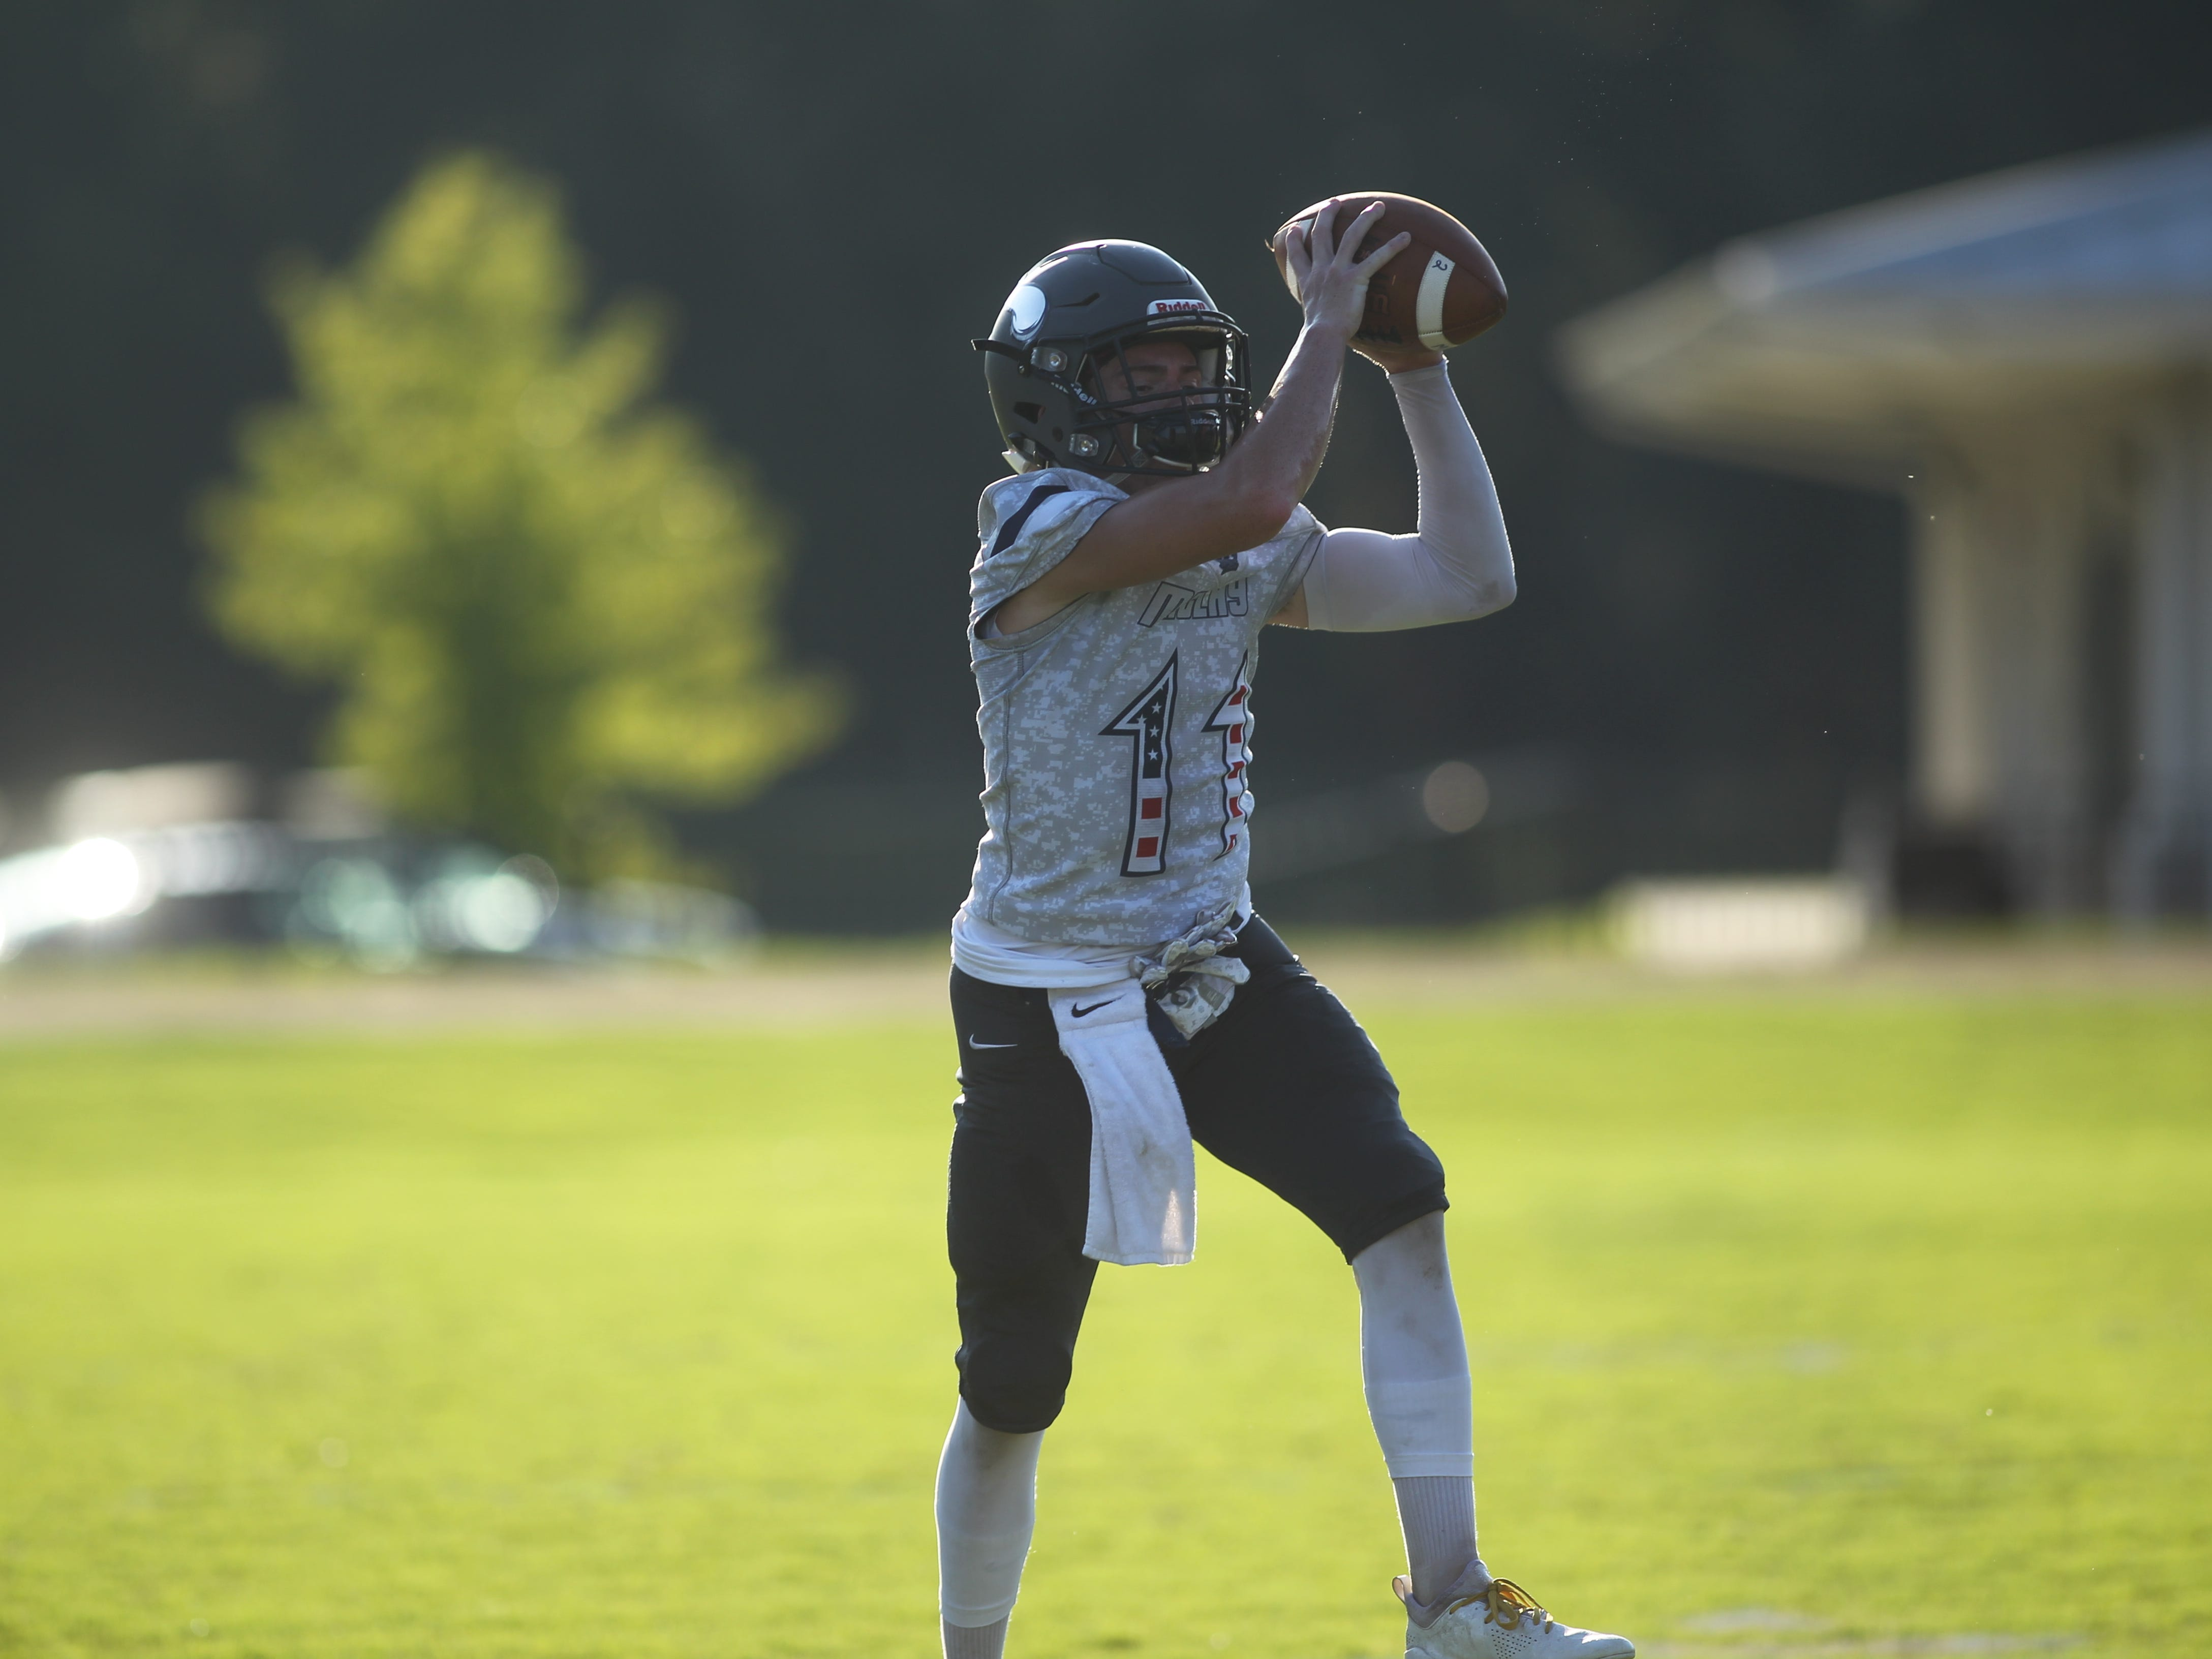 Munroe and Maclay warm-up prior to Friday's football game between the two small schools.